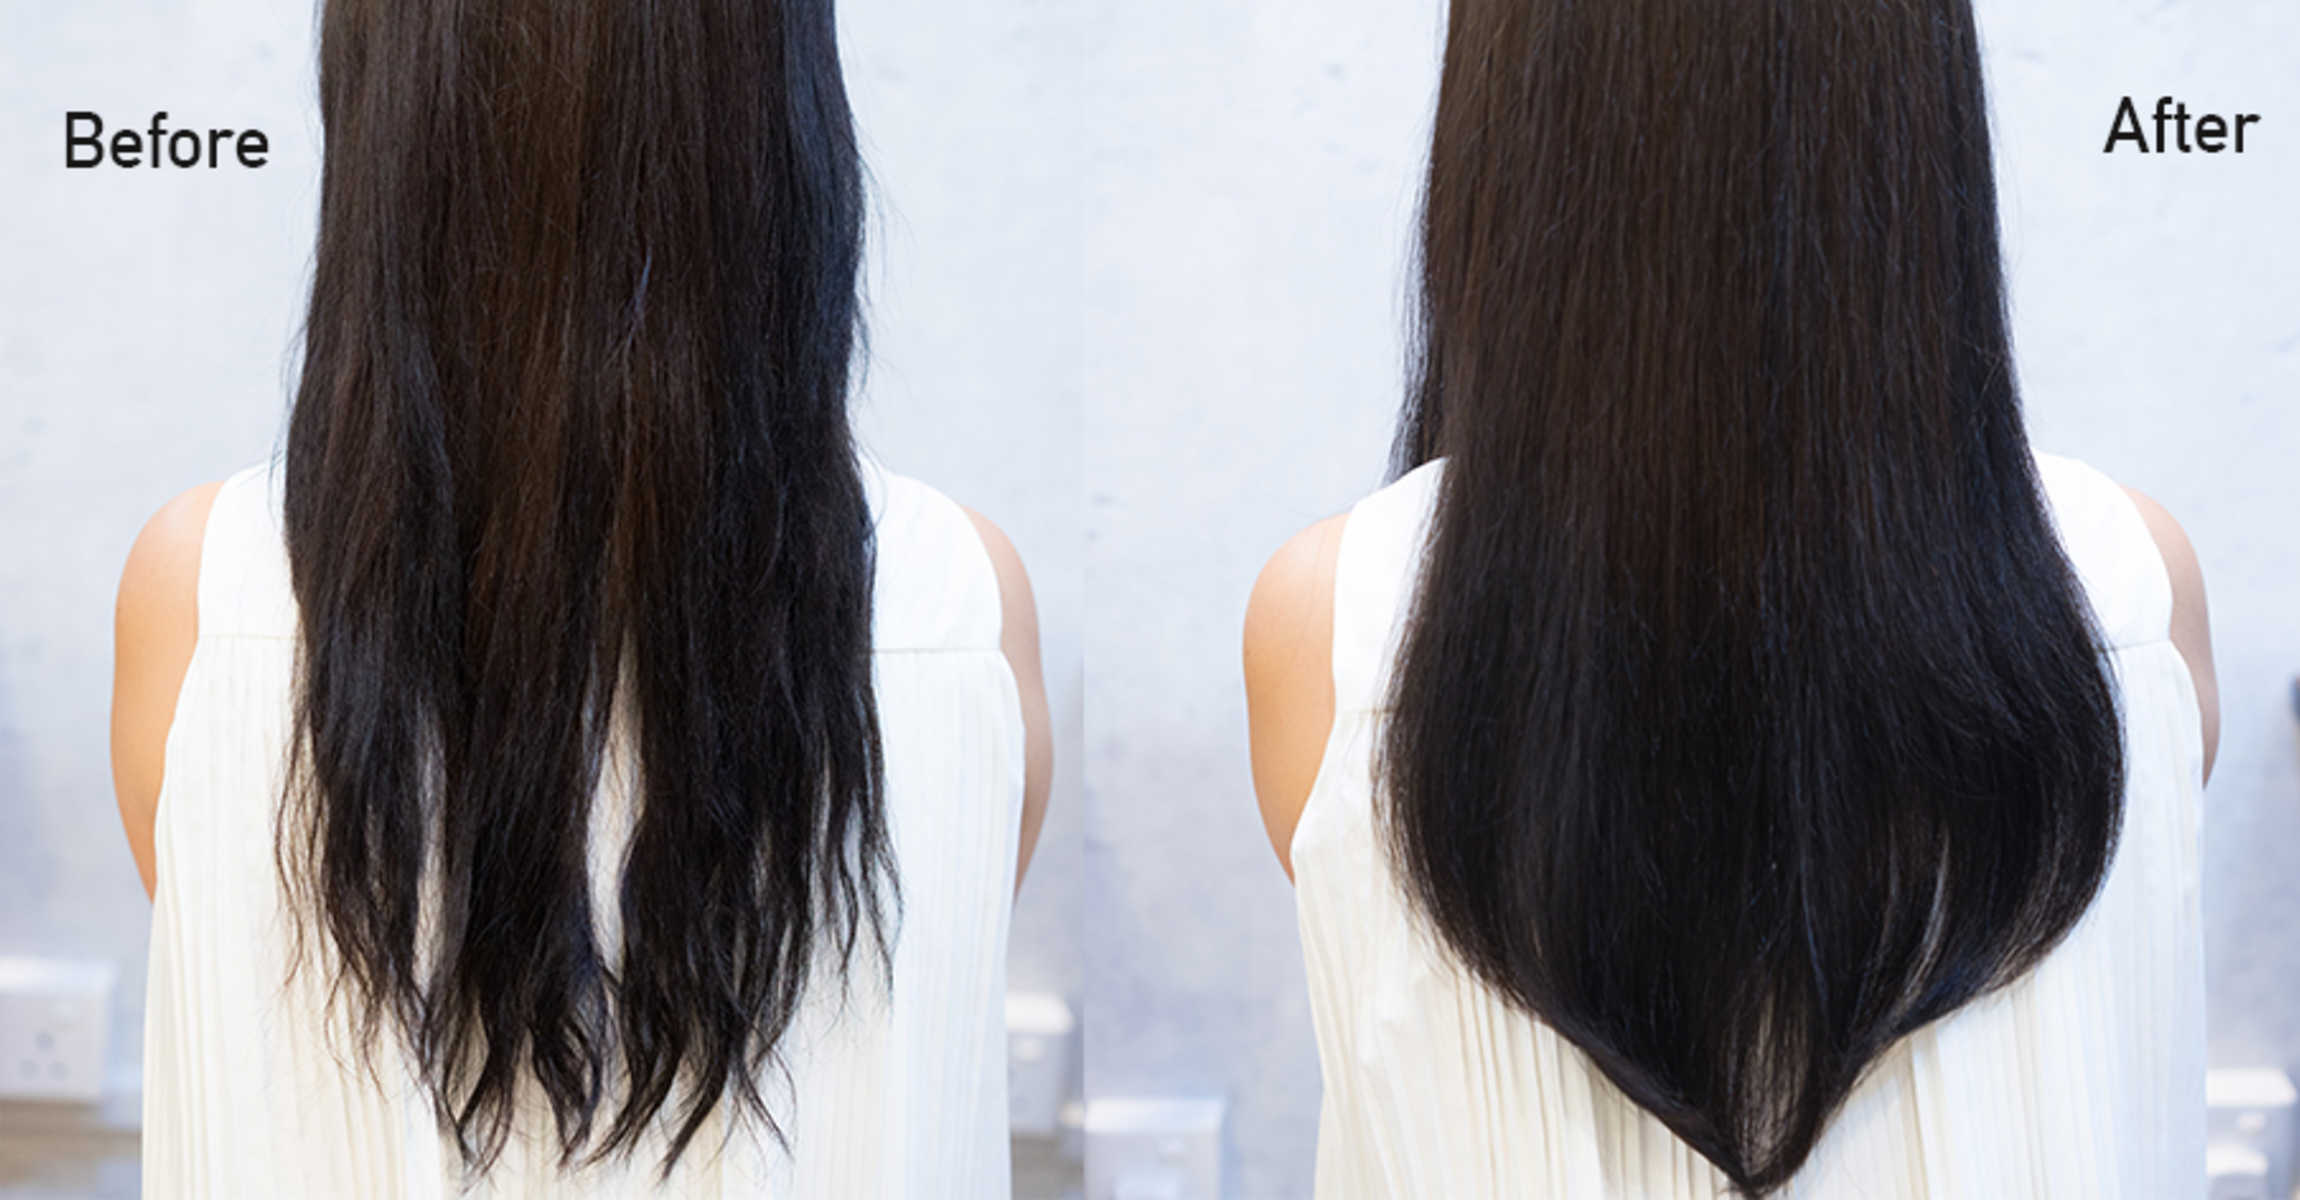 Agent TT Won Japanese Hair Treatment BH4 from Rubik Hair Salon and LOVED the Results!